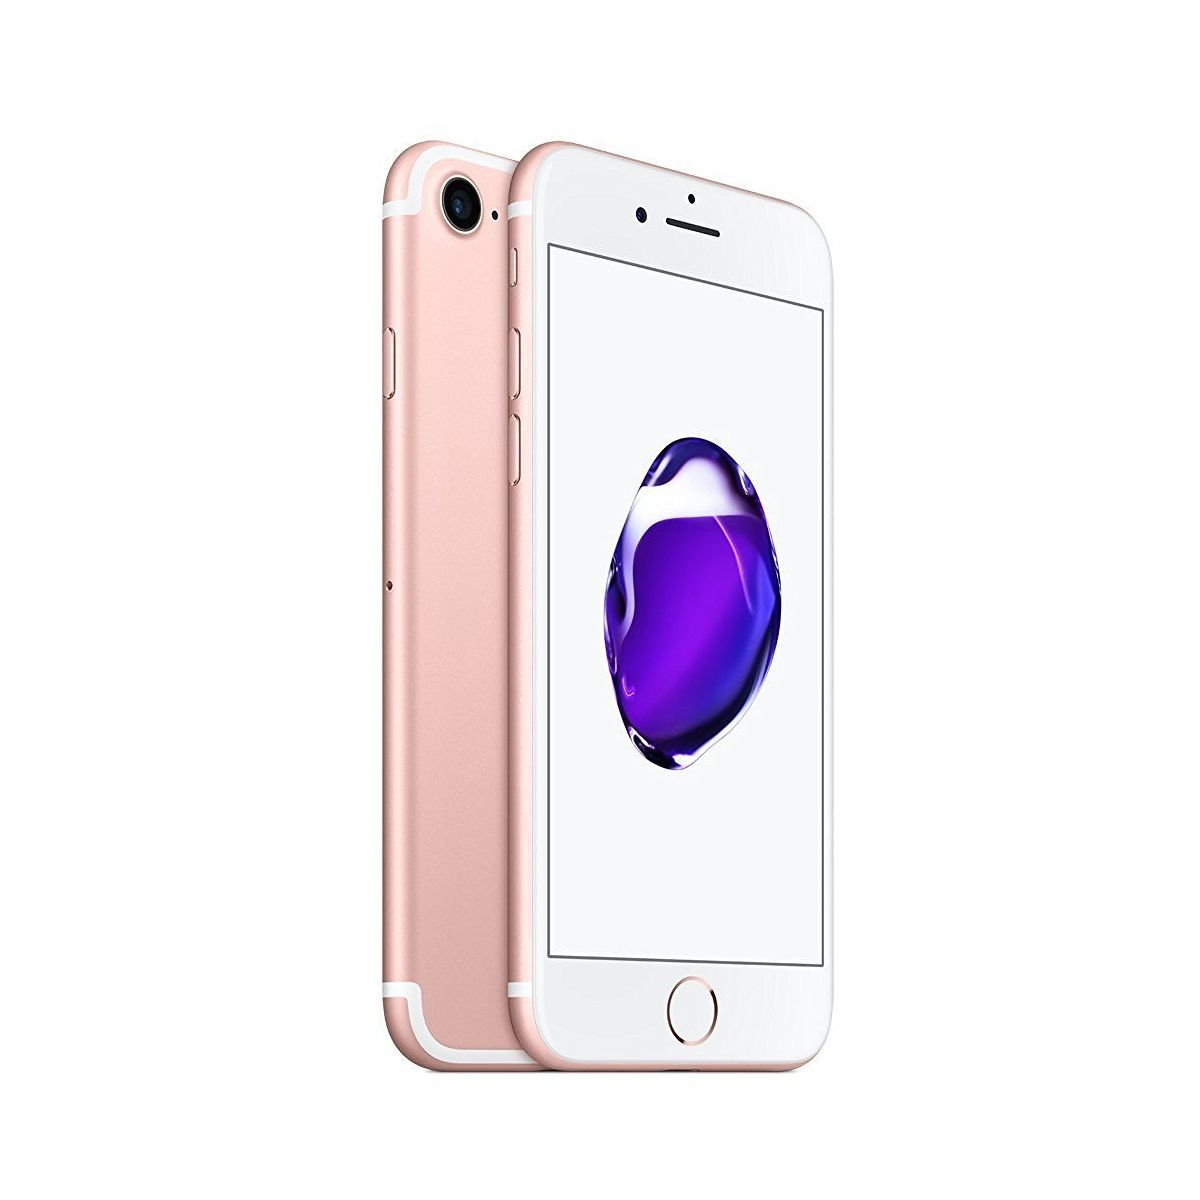 Apple iPhone 7 (32 GB) 55,999 Only at Snapdeal. Hurry